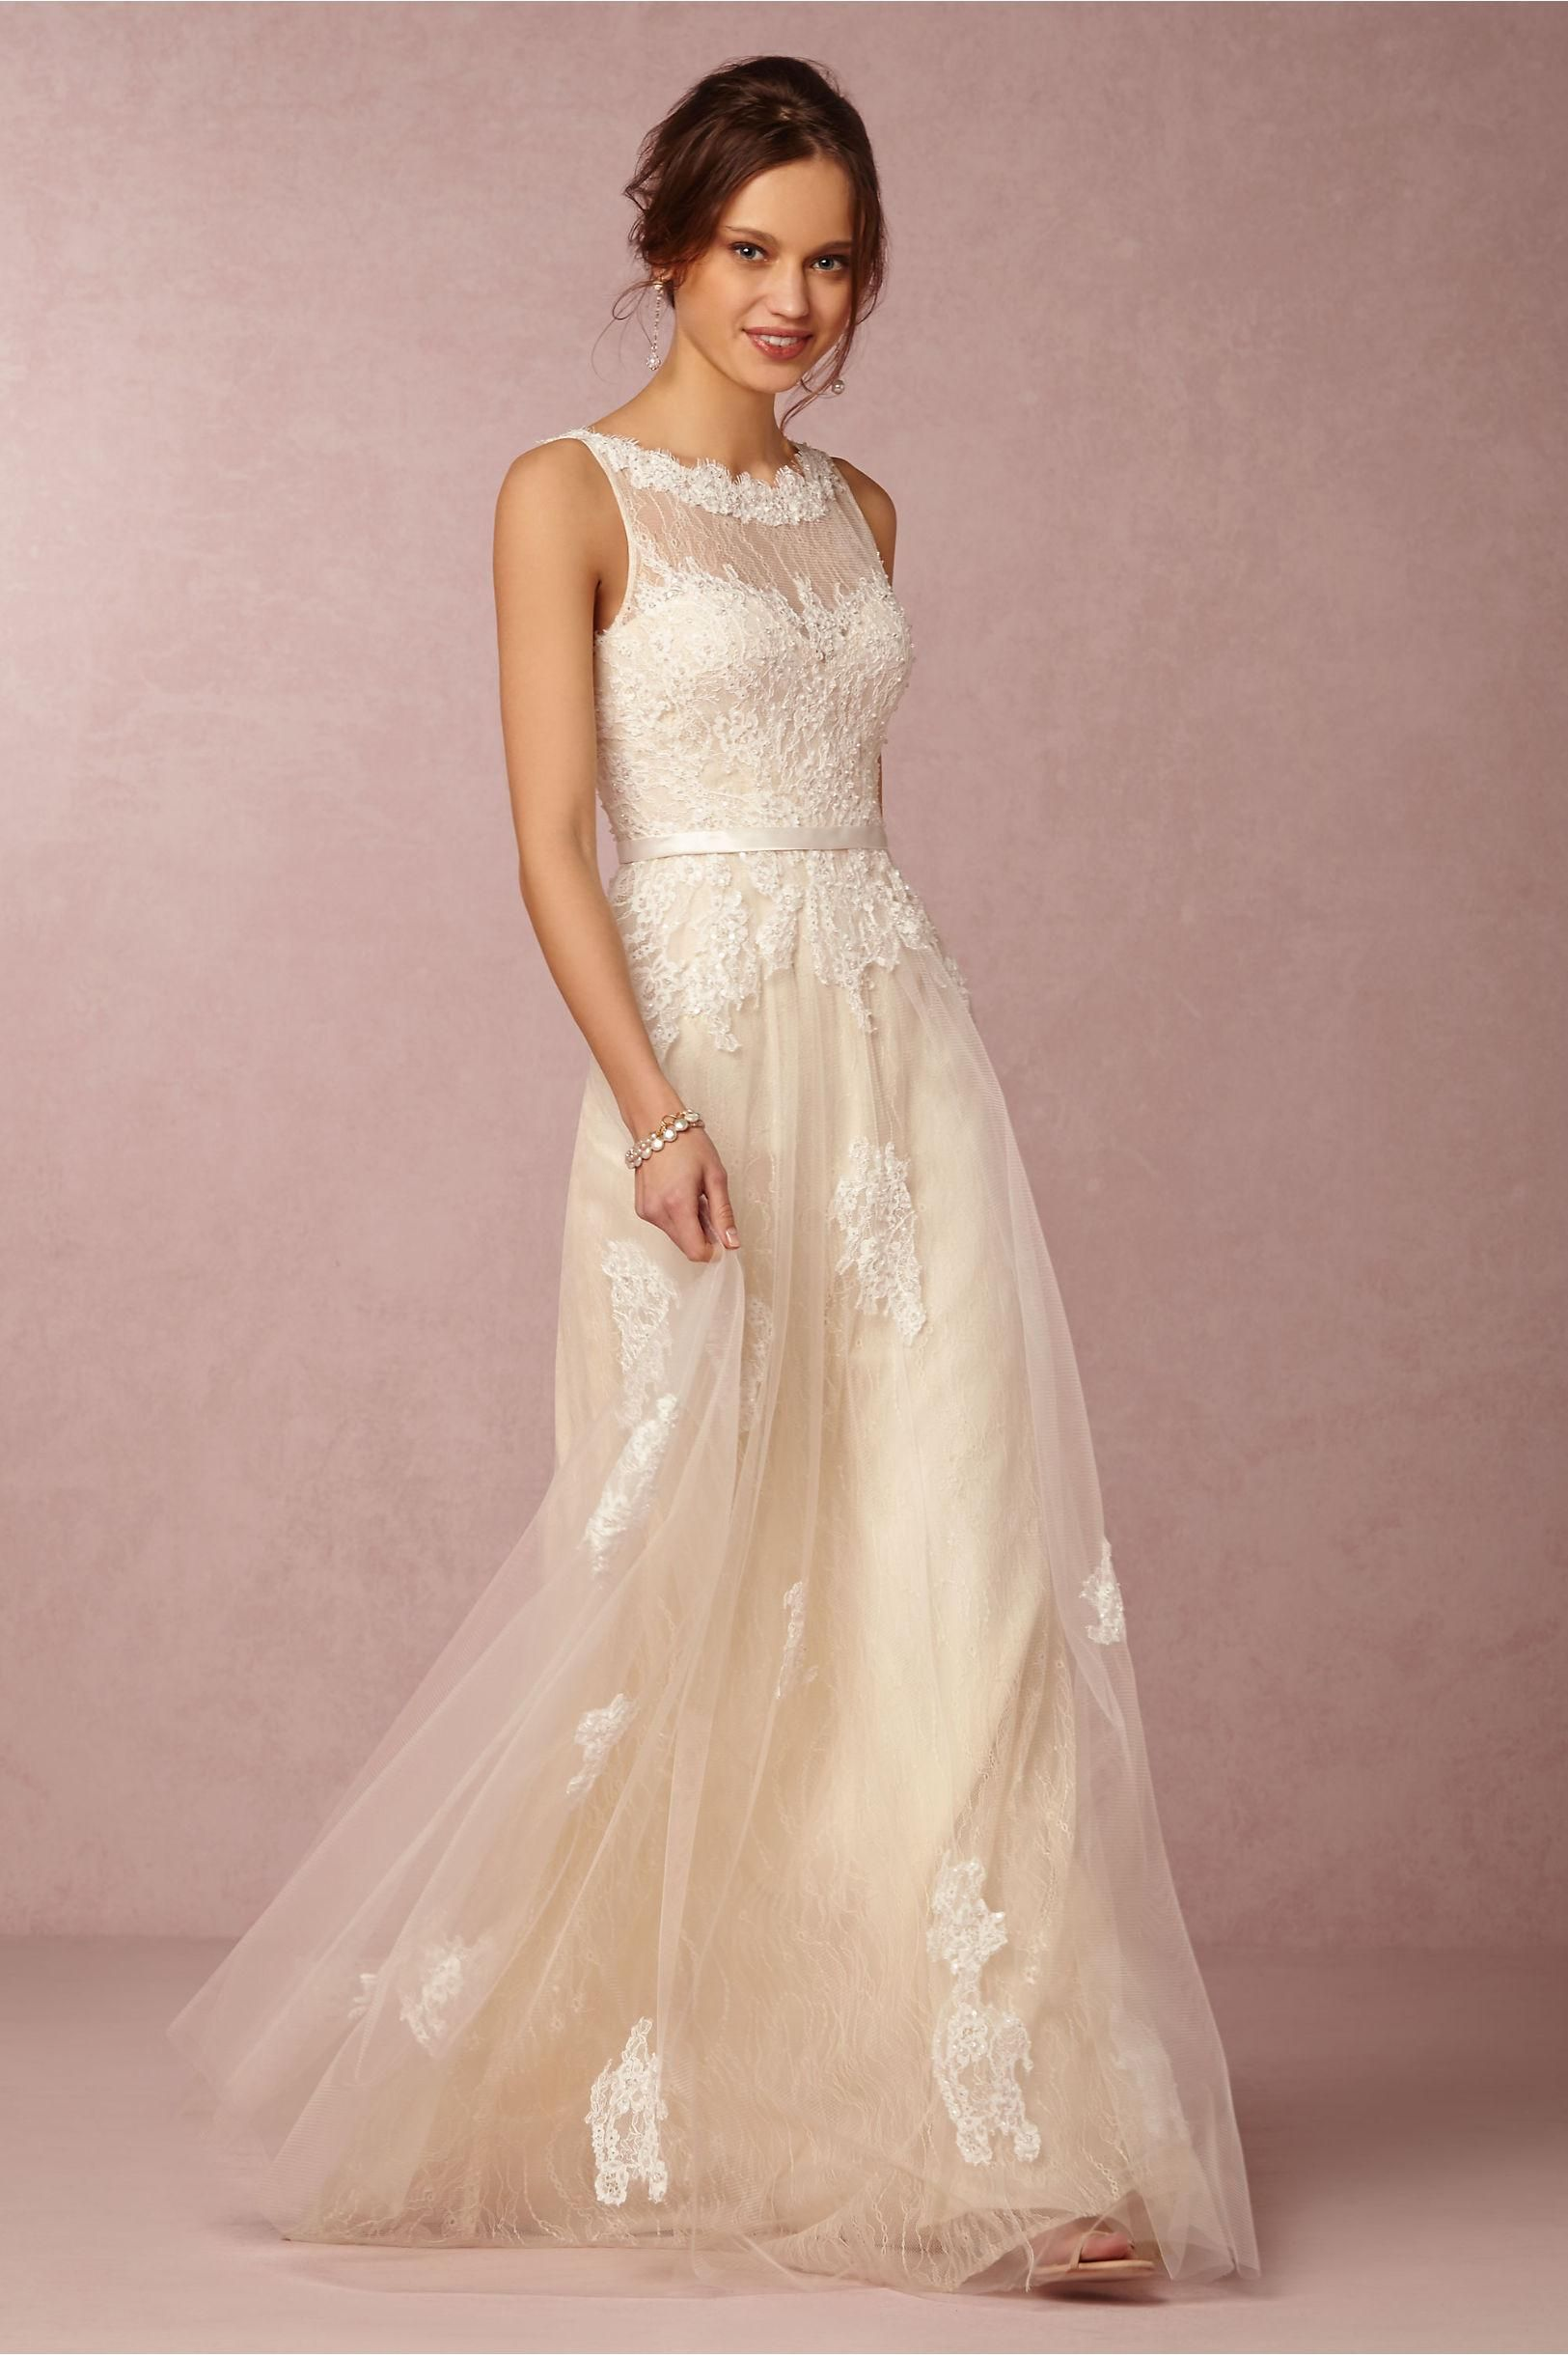 Petite Wedding Dresses Bhldn 2016 Ivory Wedding Dresses High Neck ...